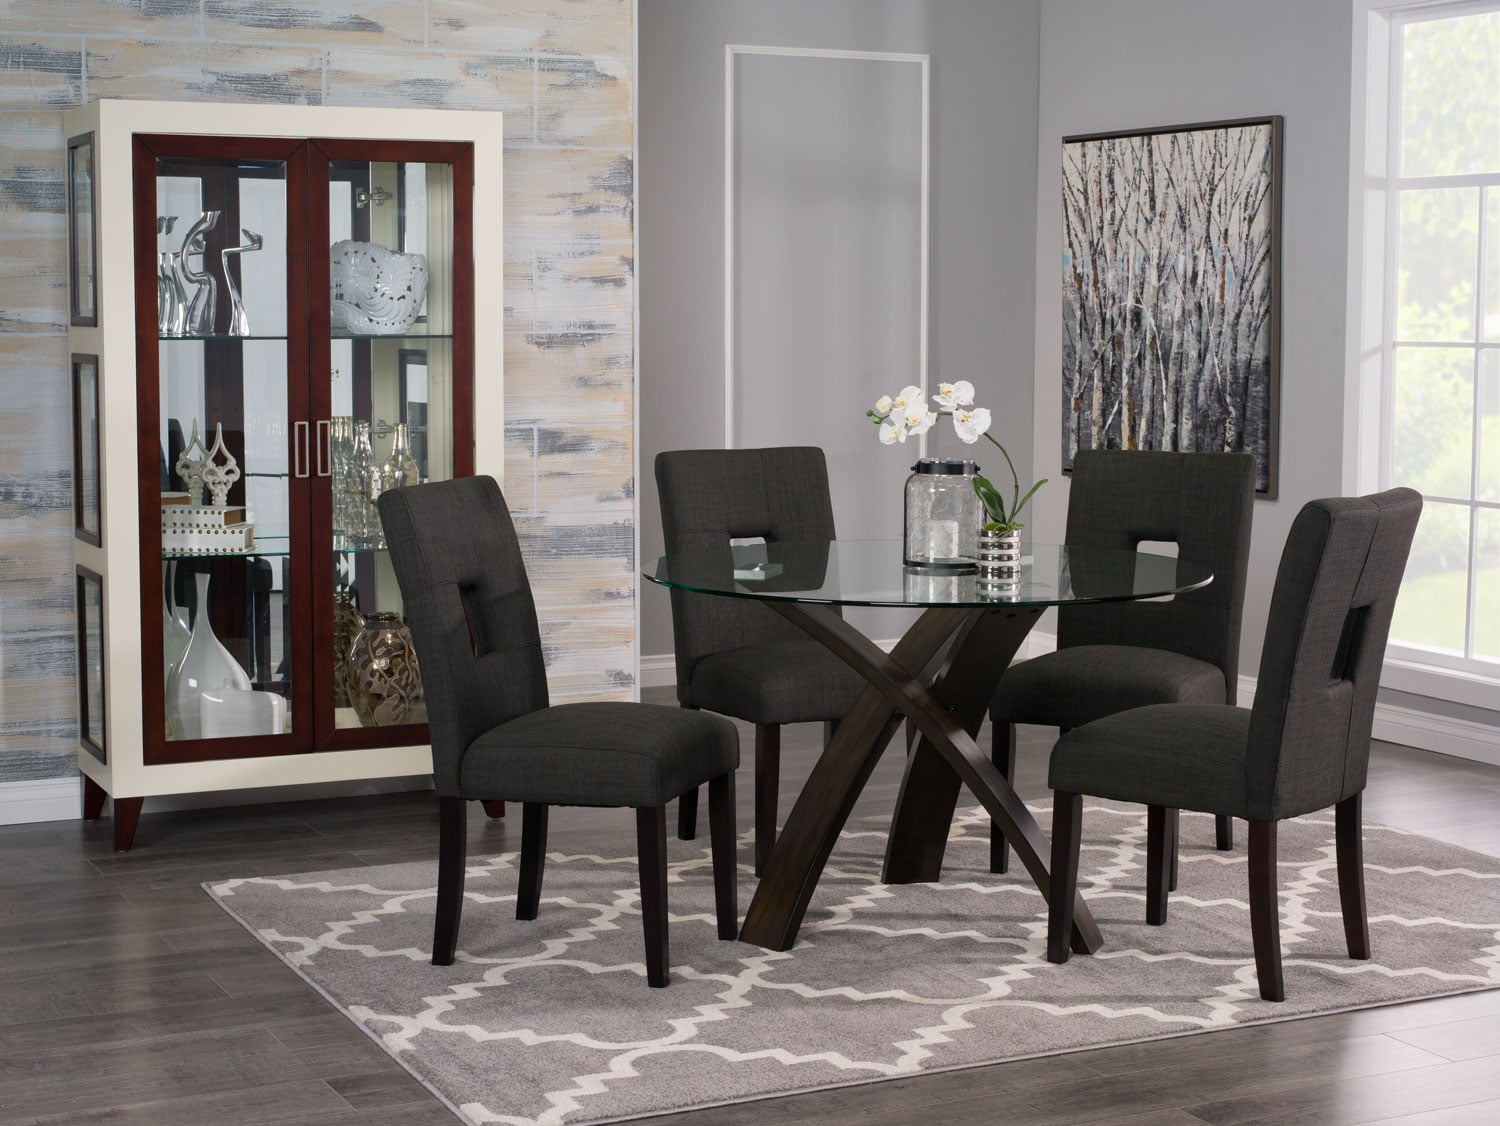 Skye 5-Piece Dining Package with McKena Chairs